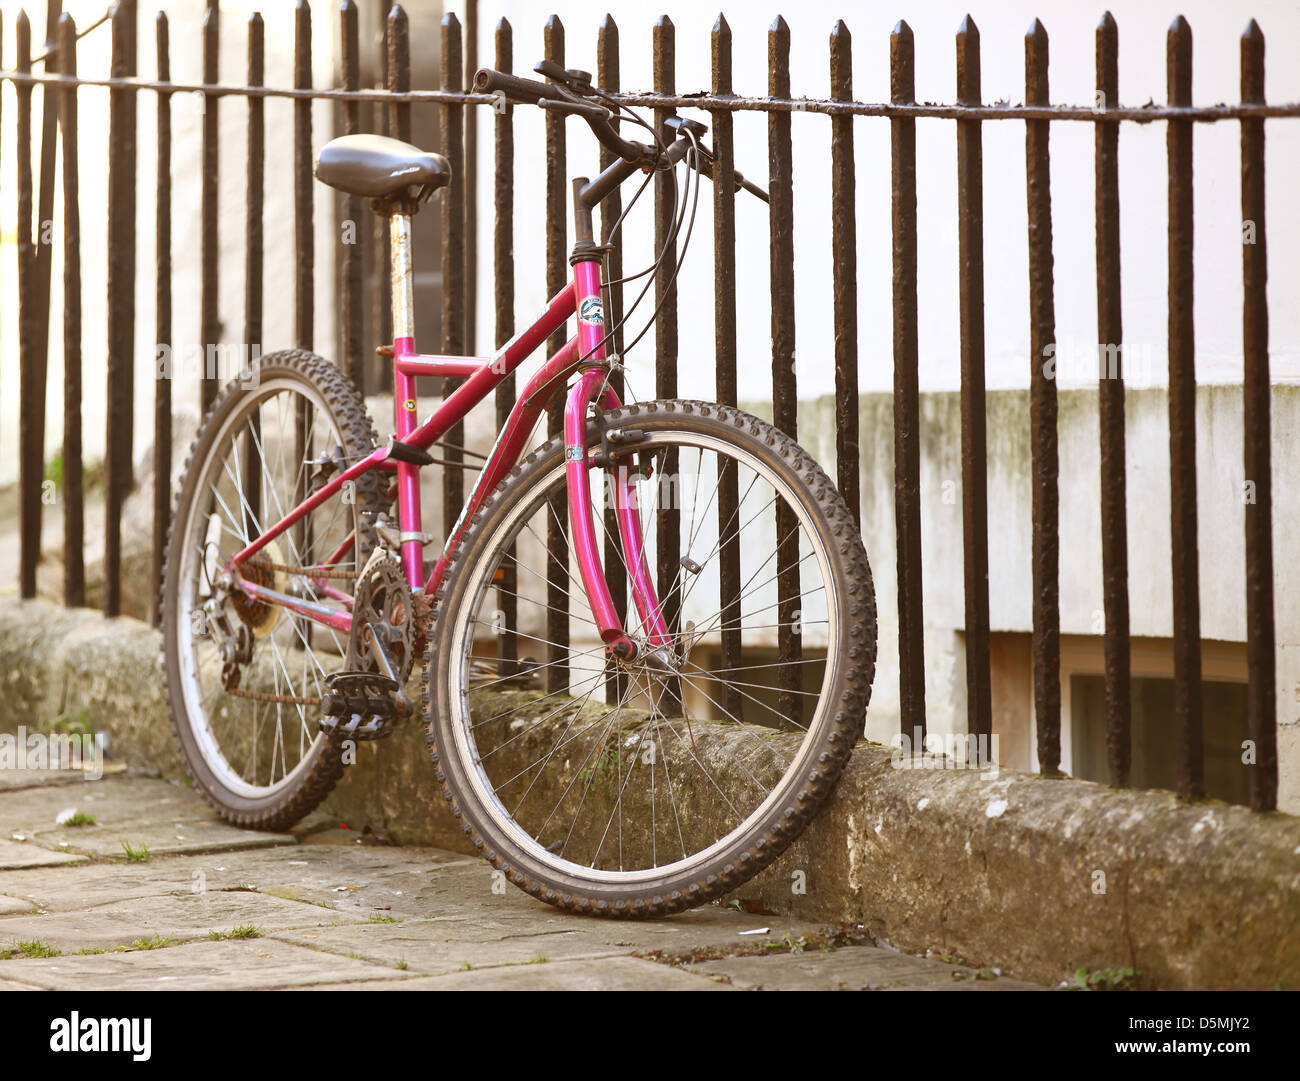 Parked and securely lock bicycle in the centre of Bath. April 2013 - Stock Image